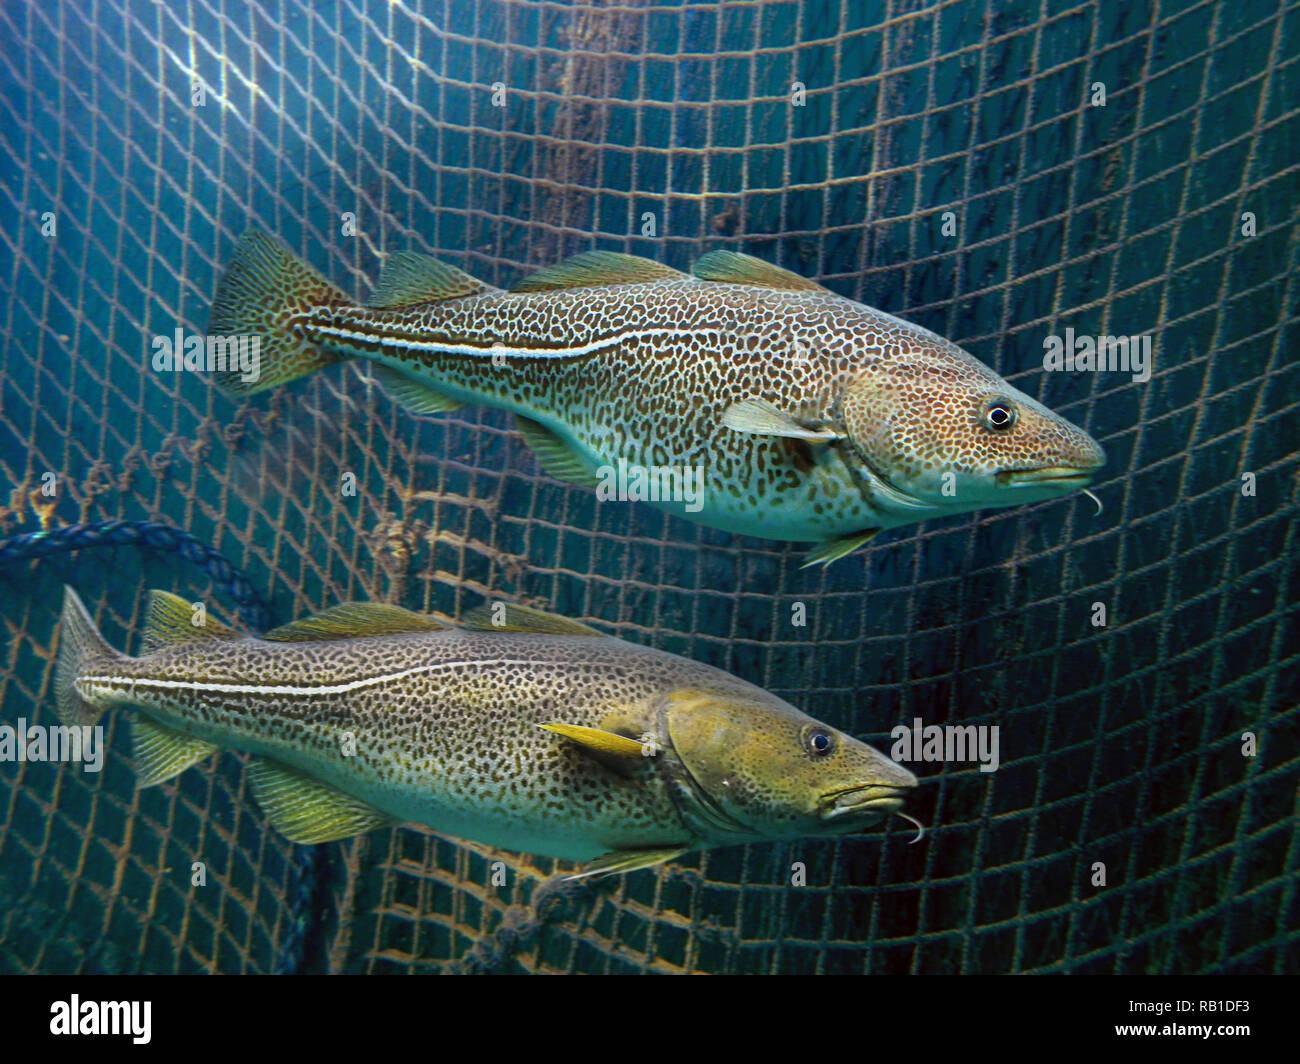 Atlantic cod, Gadus morhua, inside fishing net. Atlantic cod is not only an economic mainstay for many people but also a dominant member - Stock Image